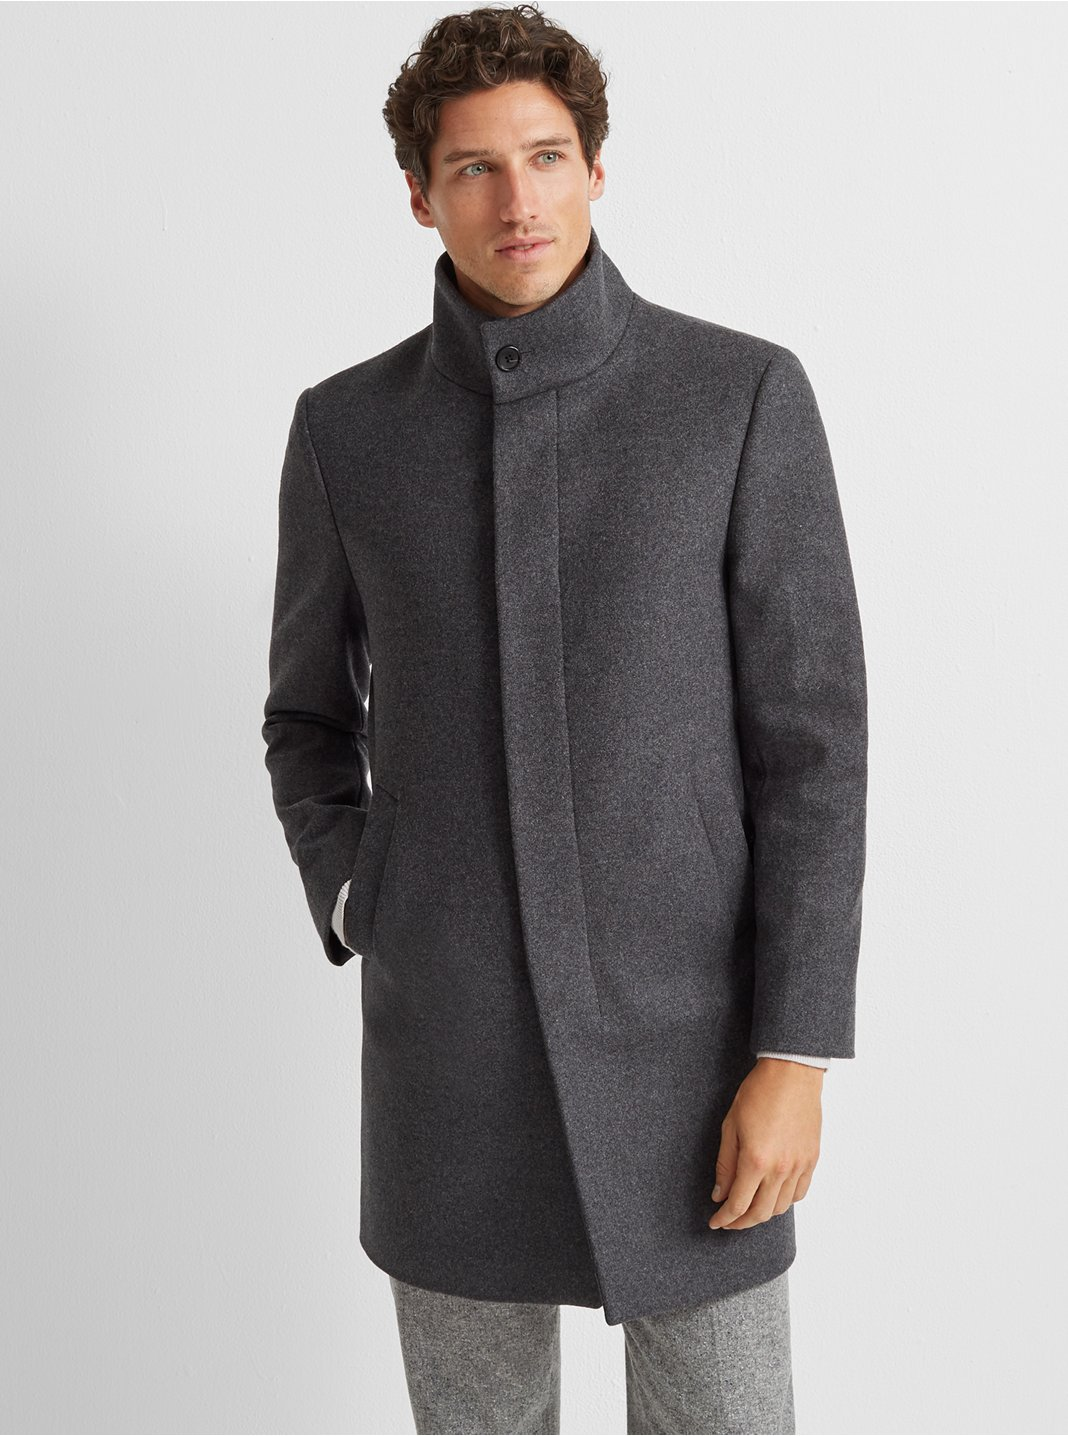 superior quality best price top-rated fashion Men's Coats and Jackets | Club Monaco